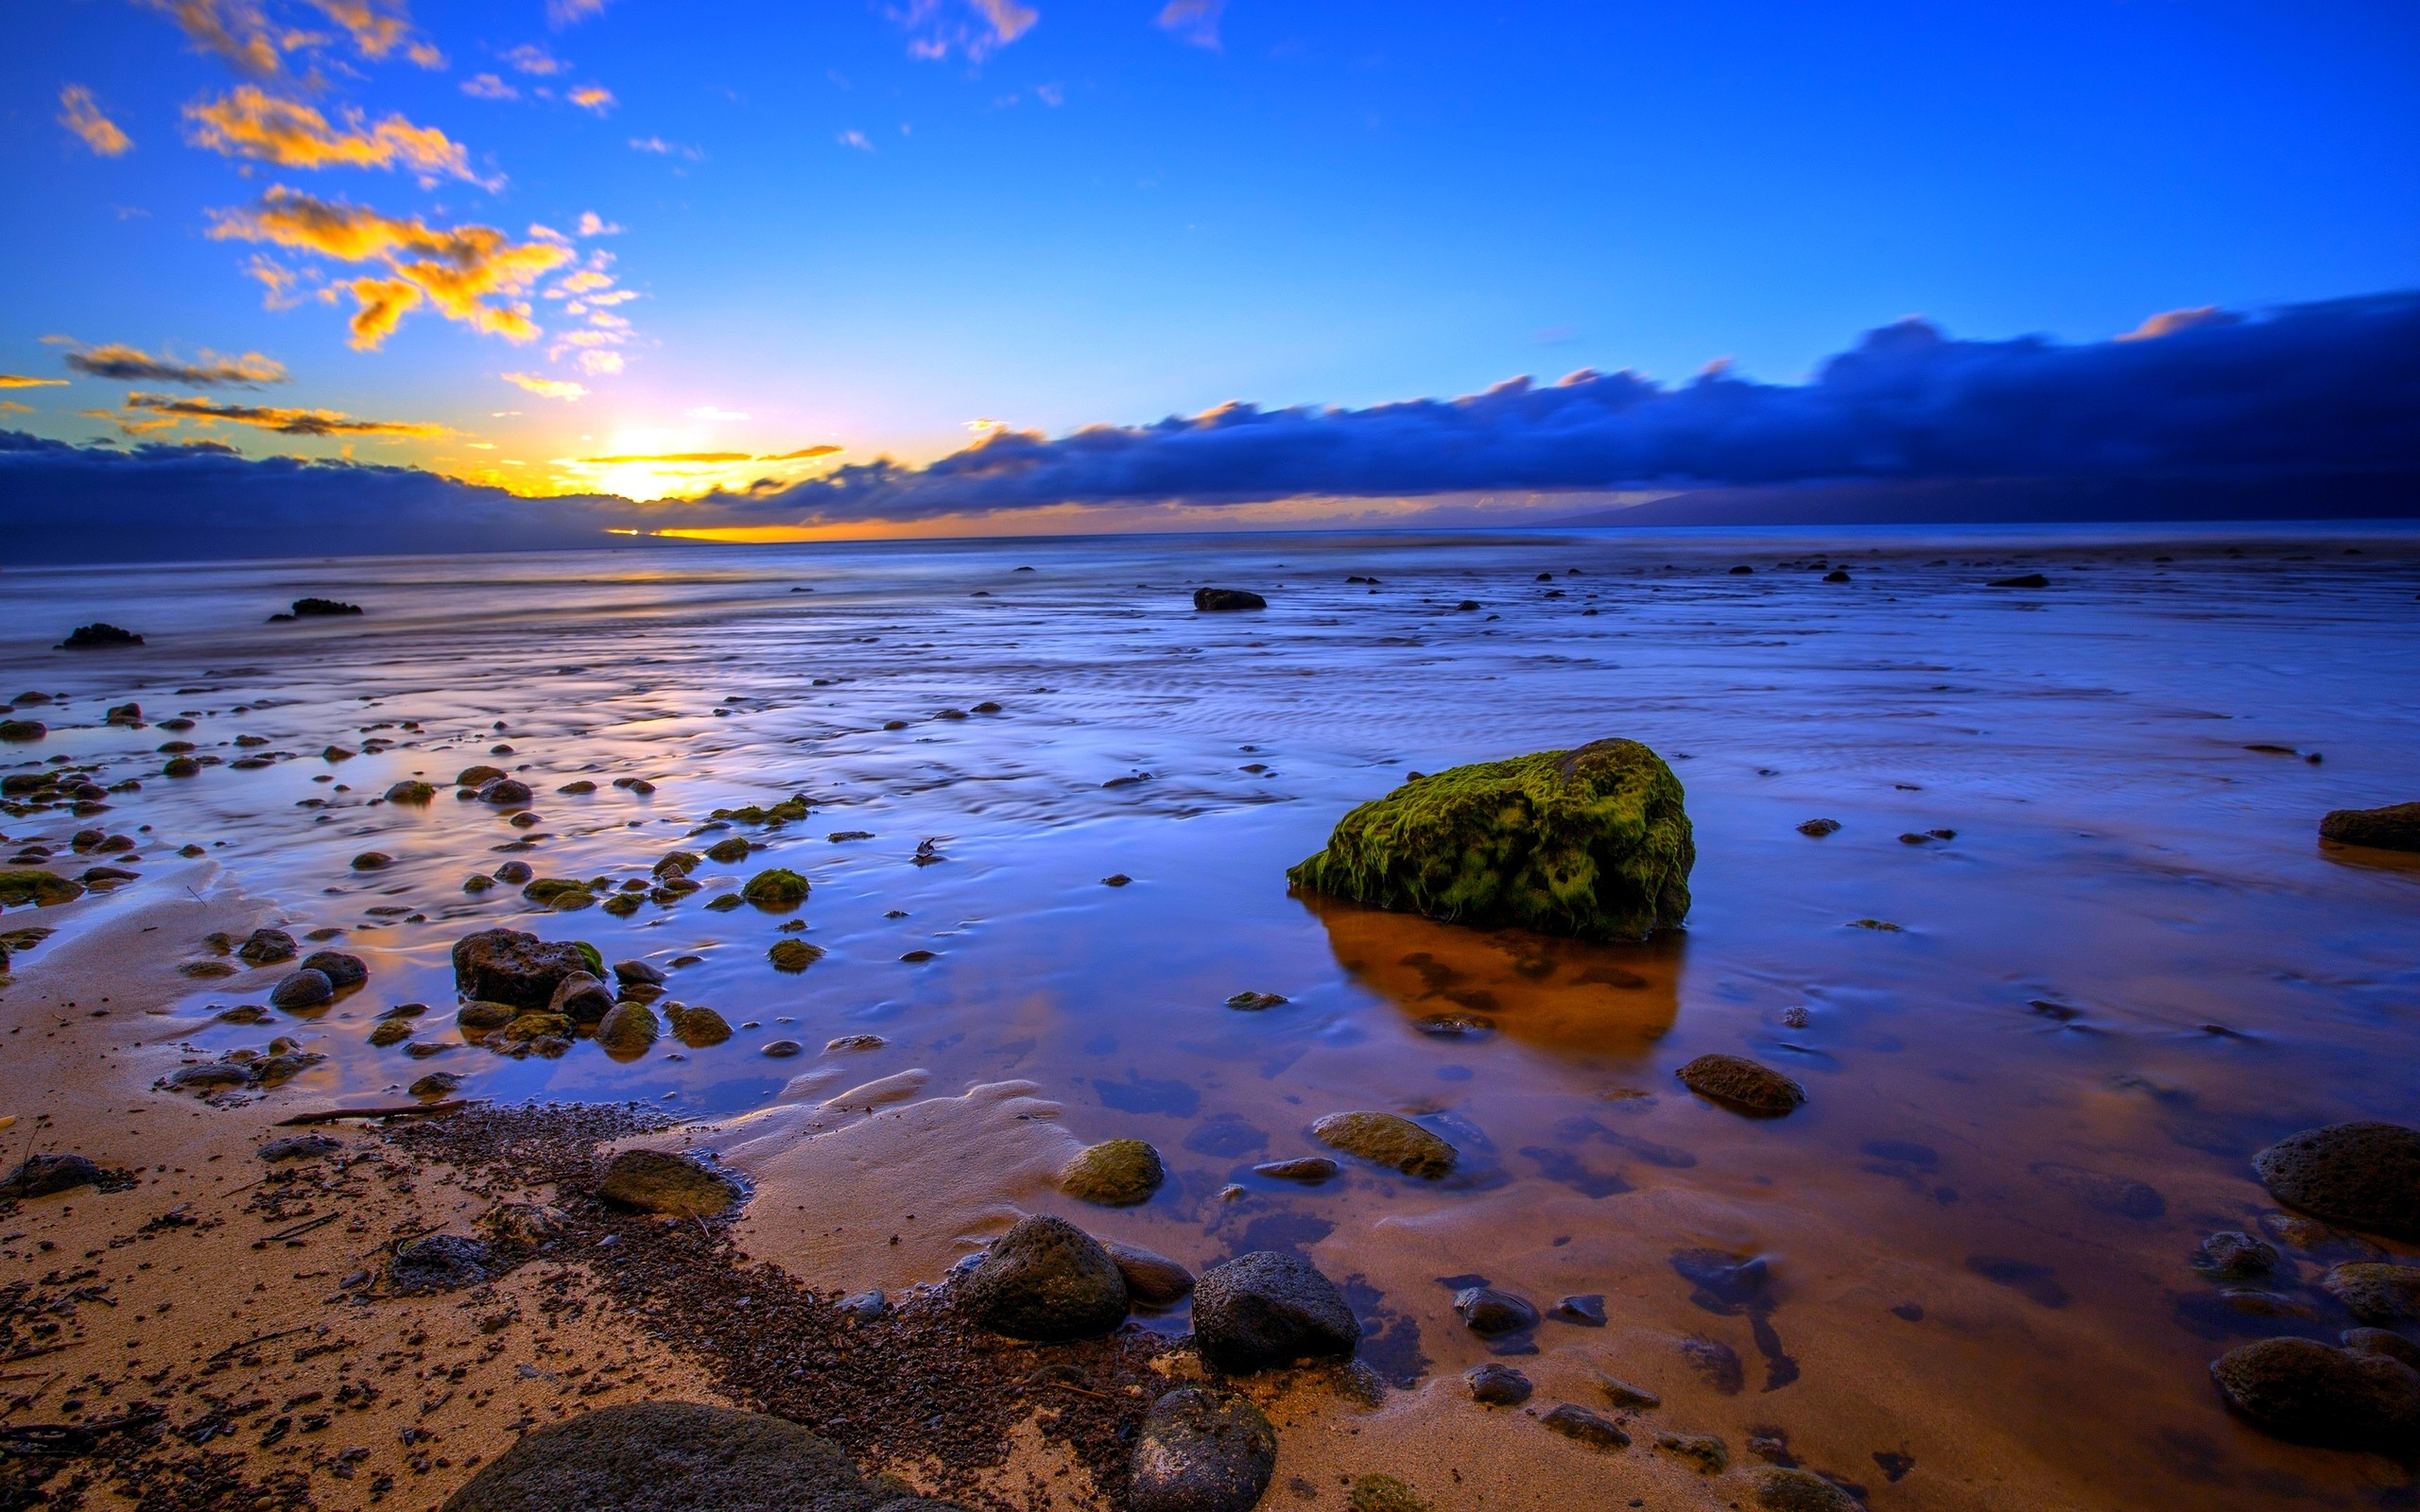 maui at sunset wallpaper | allwallpaper.in #4973 | pc | en